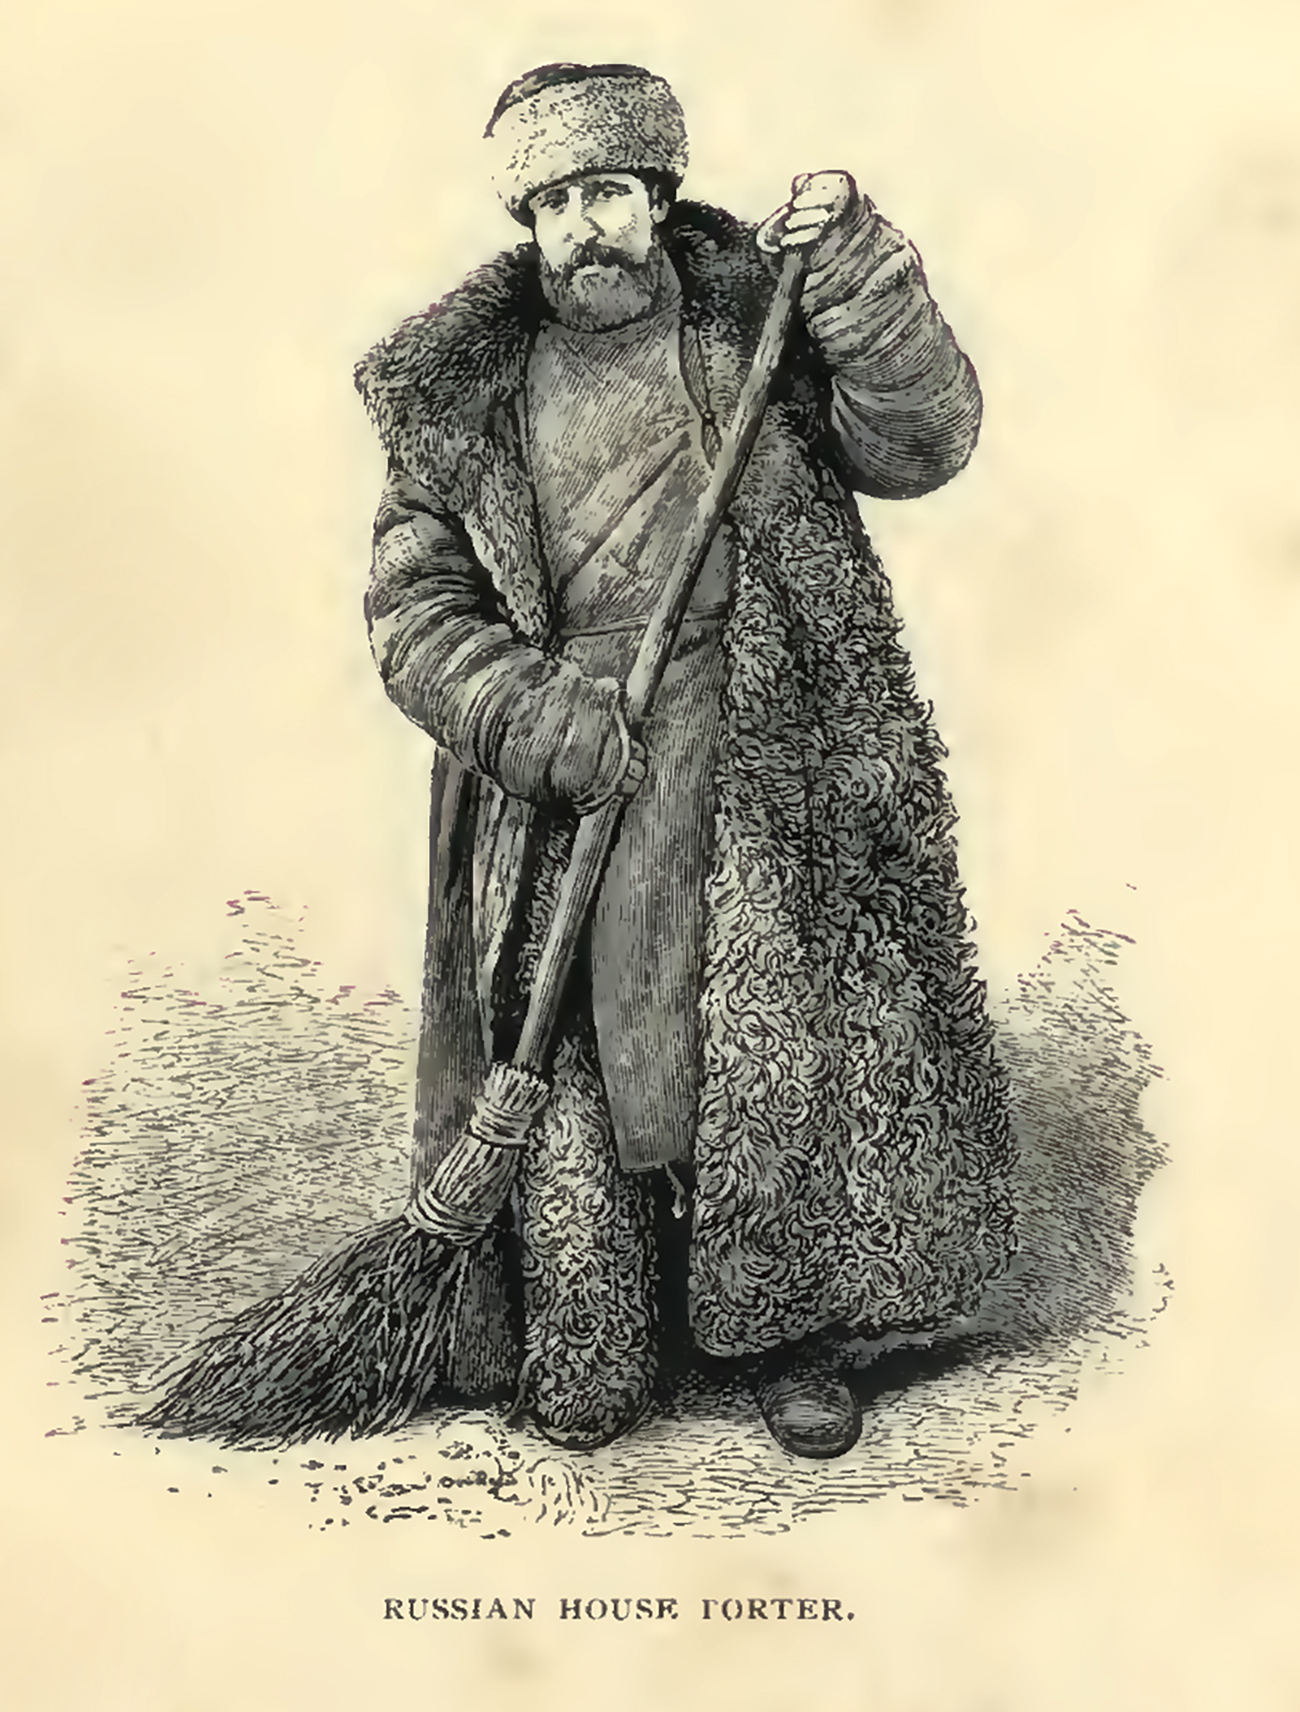 Russian House Porter. Illustration in Around the Kremlin; or, Pictures of life in Moscow by Lowth, G. T. (George T.). Published in 1868. Source: Photo: California Digital Library